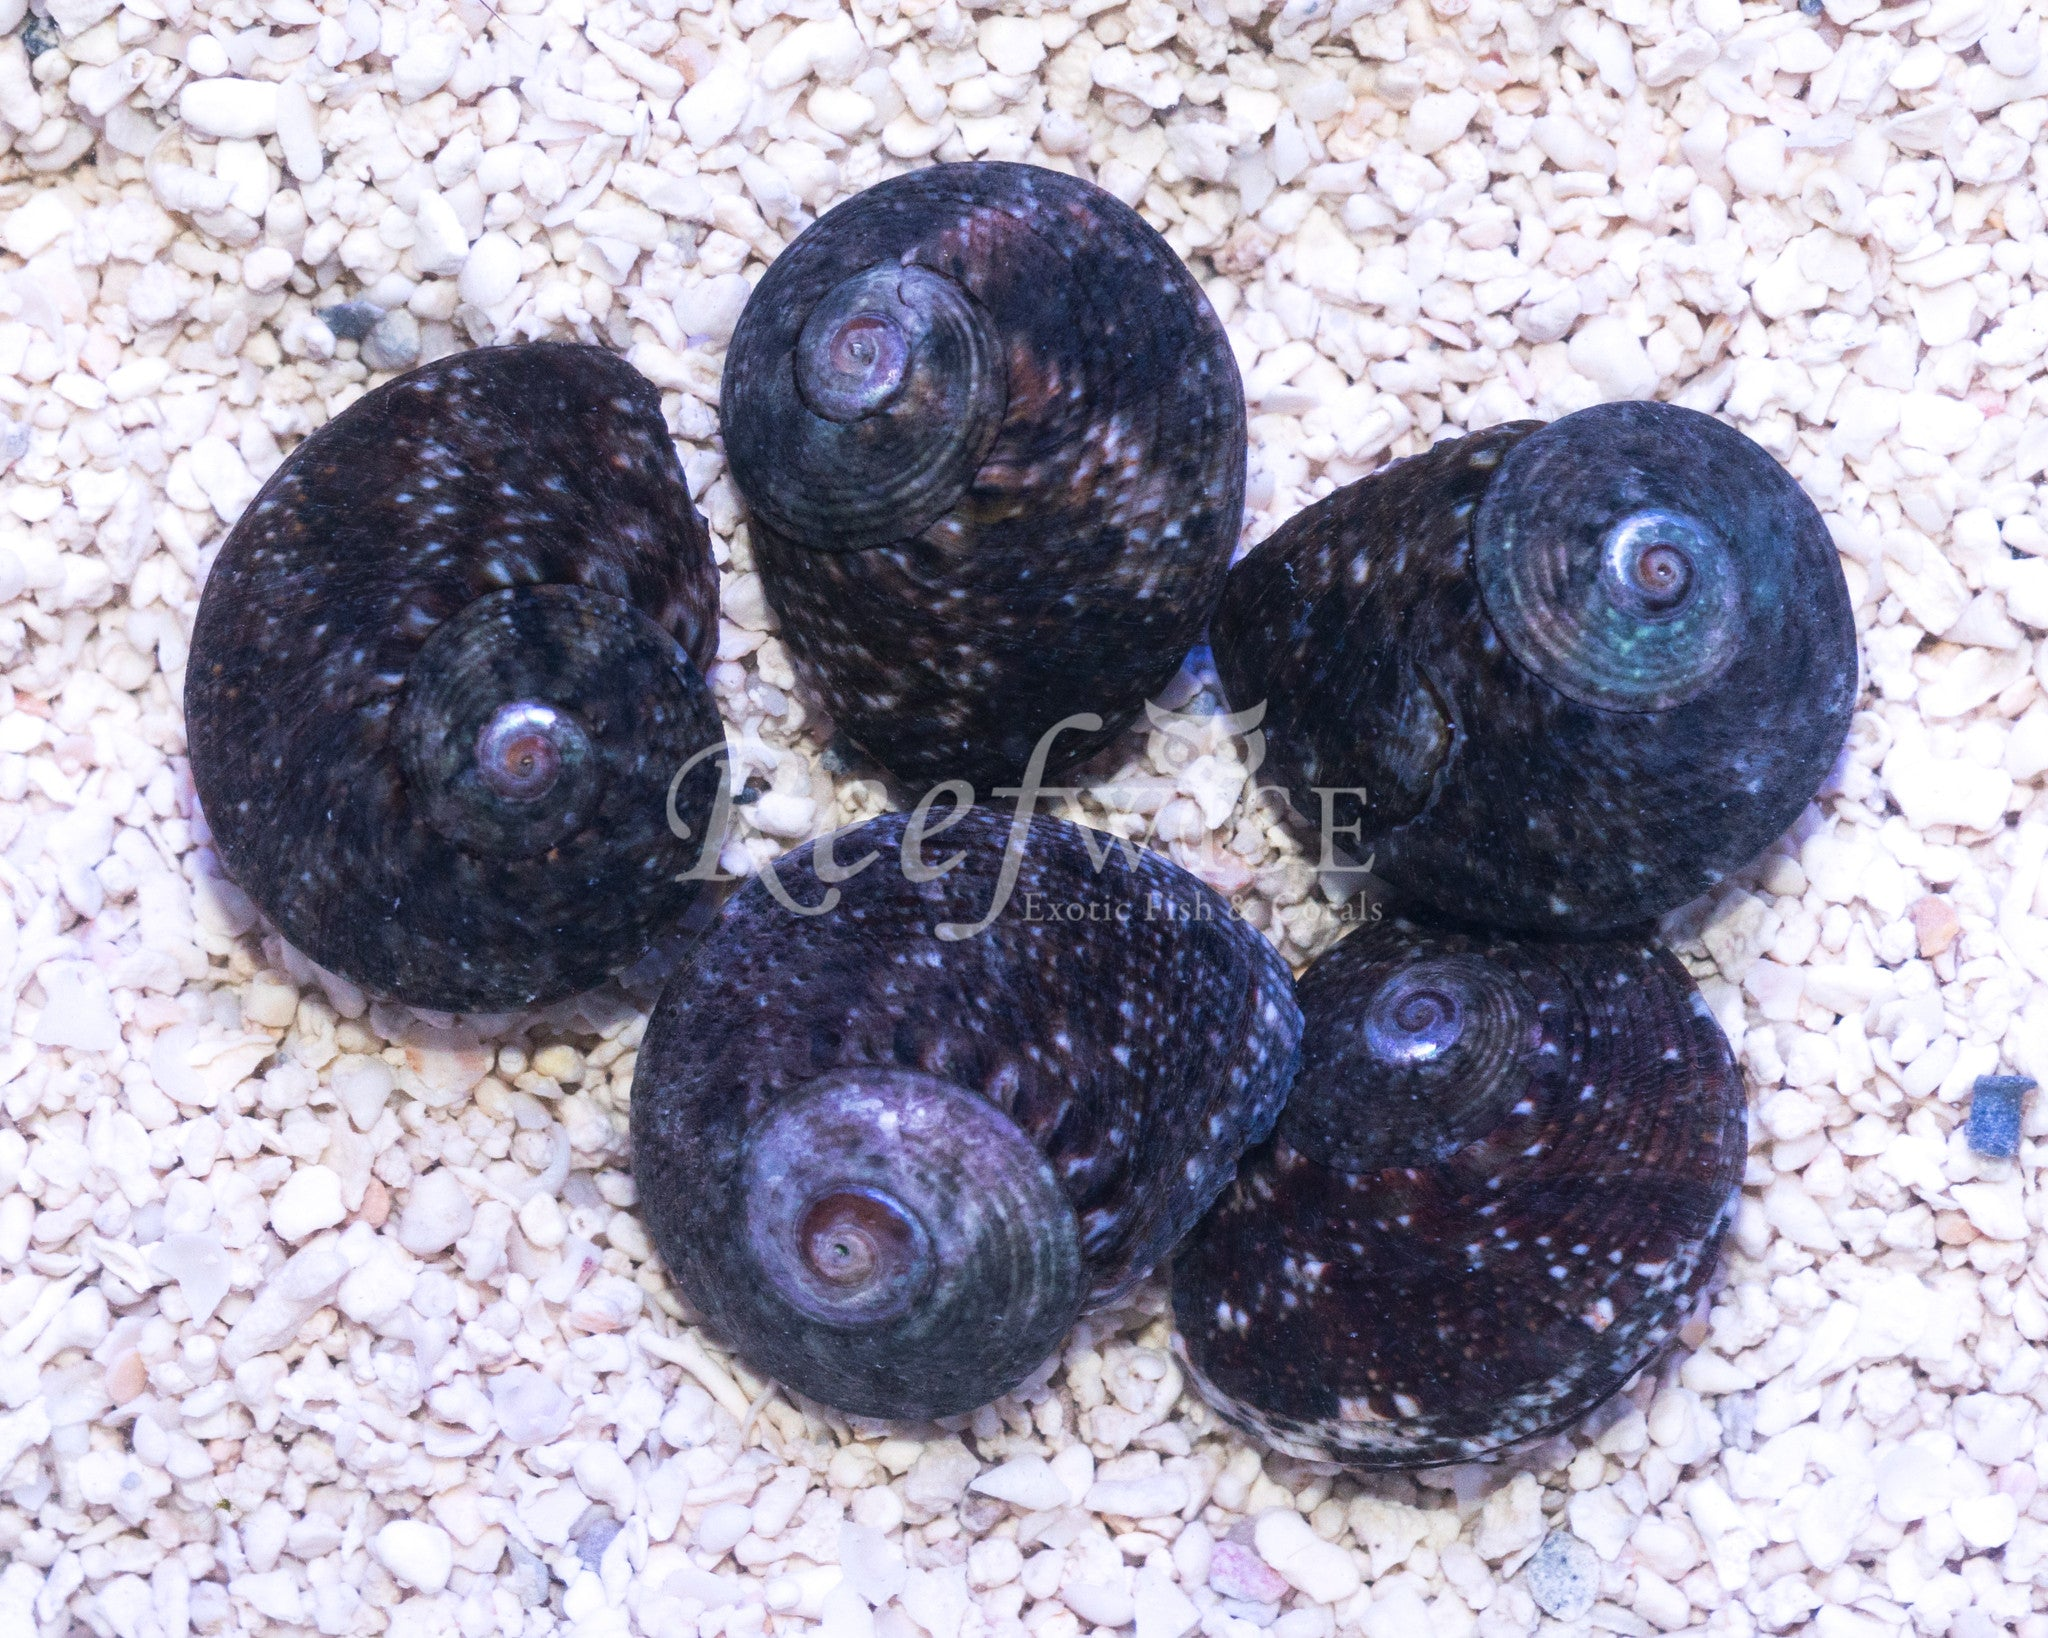 Black Turbo Snails Fiji 5 Pack